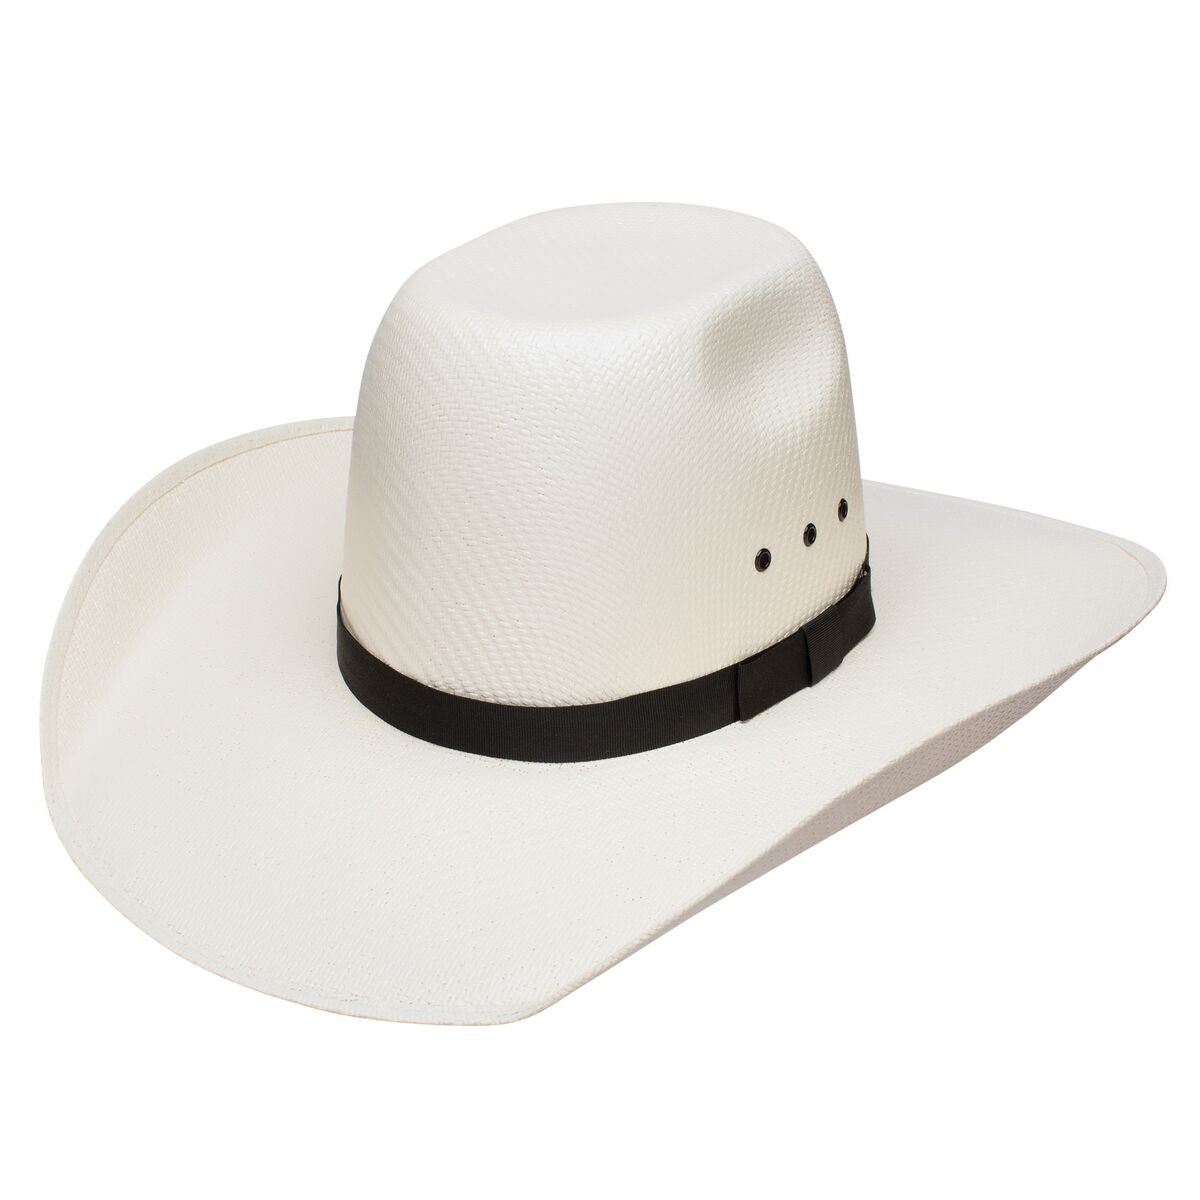 7d107cfca45 Resistol Tuff Hedeman Collection McCabe Punchy Crown Straw Cowboy Hat at  Amazon Men s Clothing store